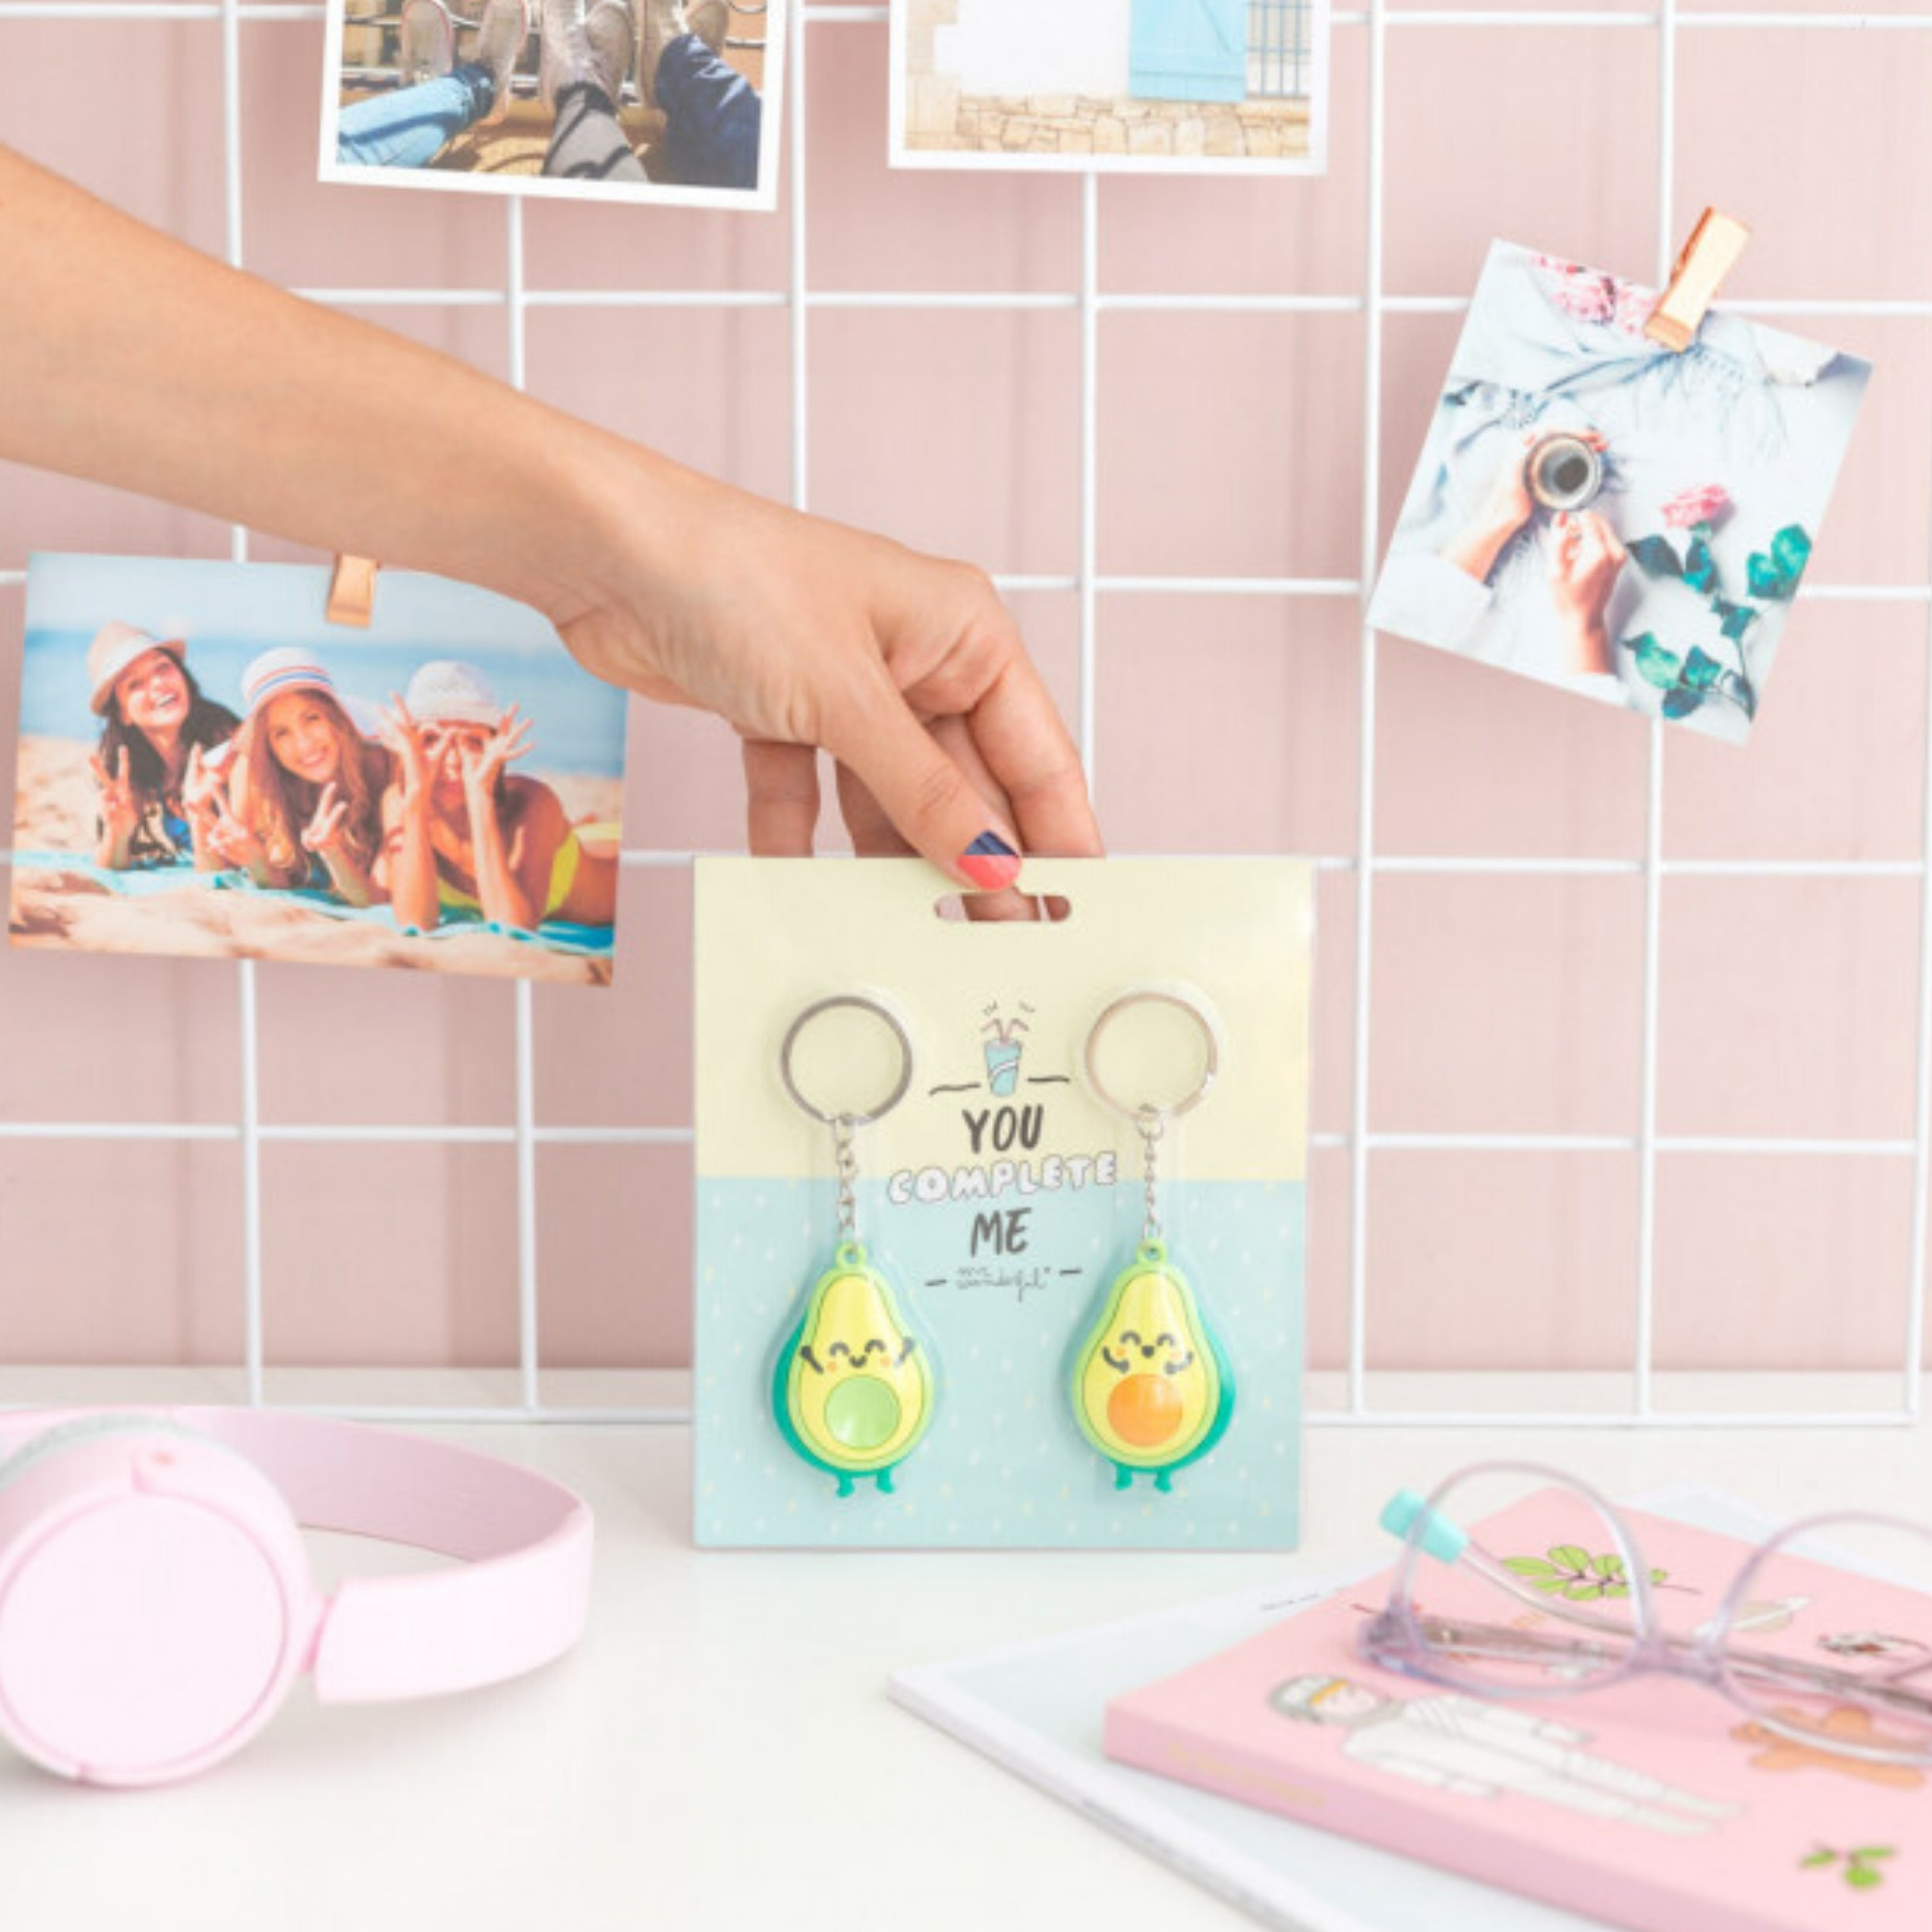 Mr Wonderful Sleutelhanger Set - For Friends who fit Perfectly